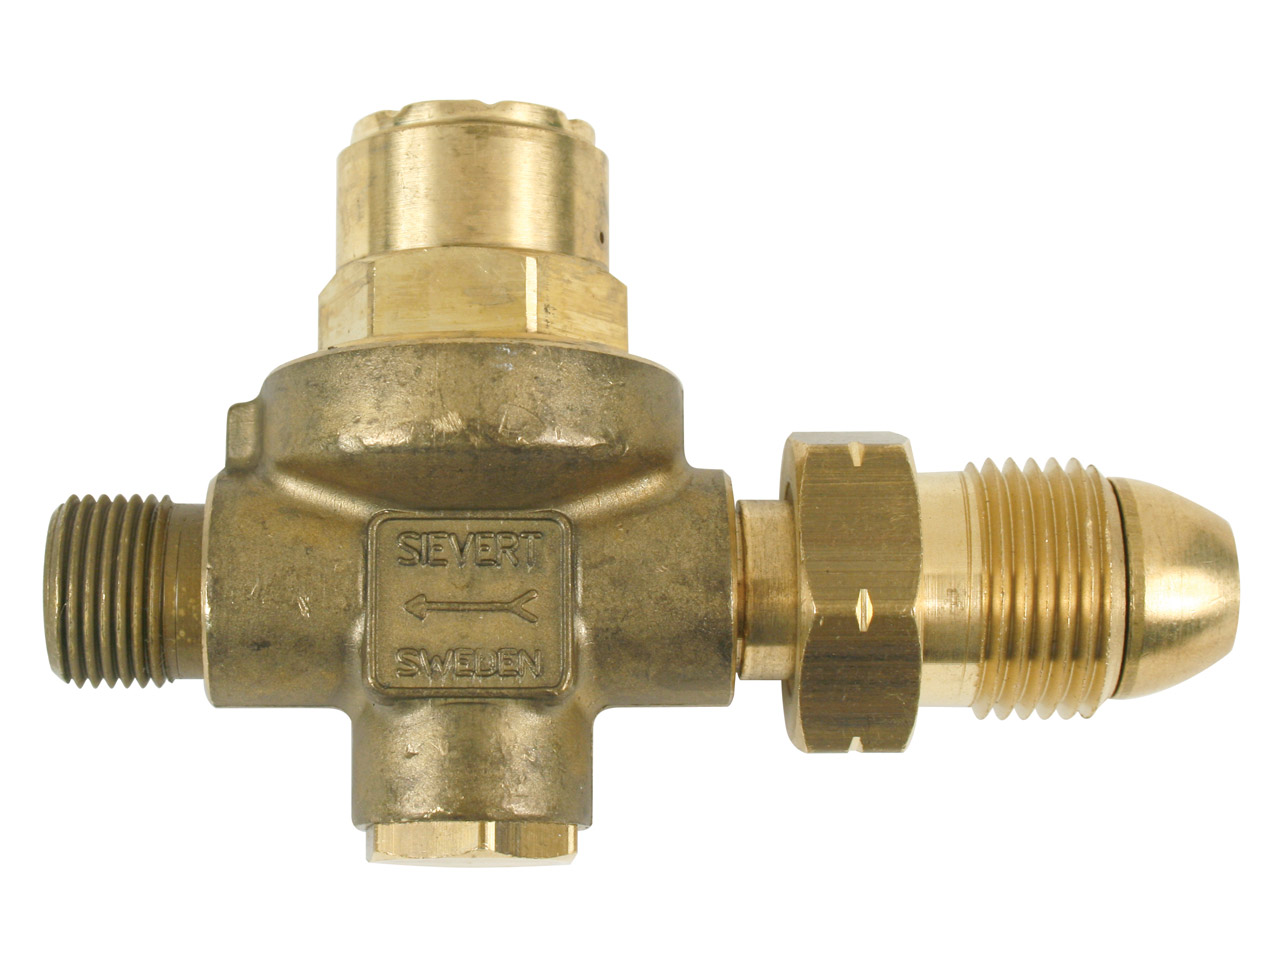 Sievert Fixed 2-bar Regulator      3091-21